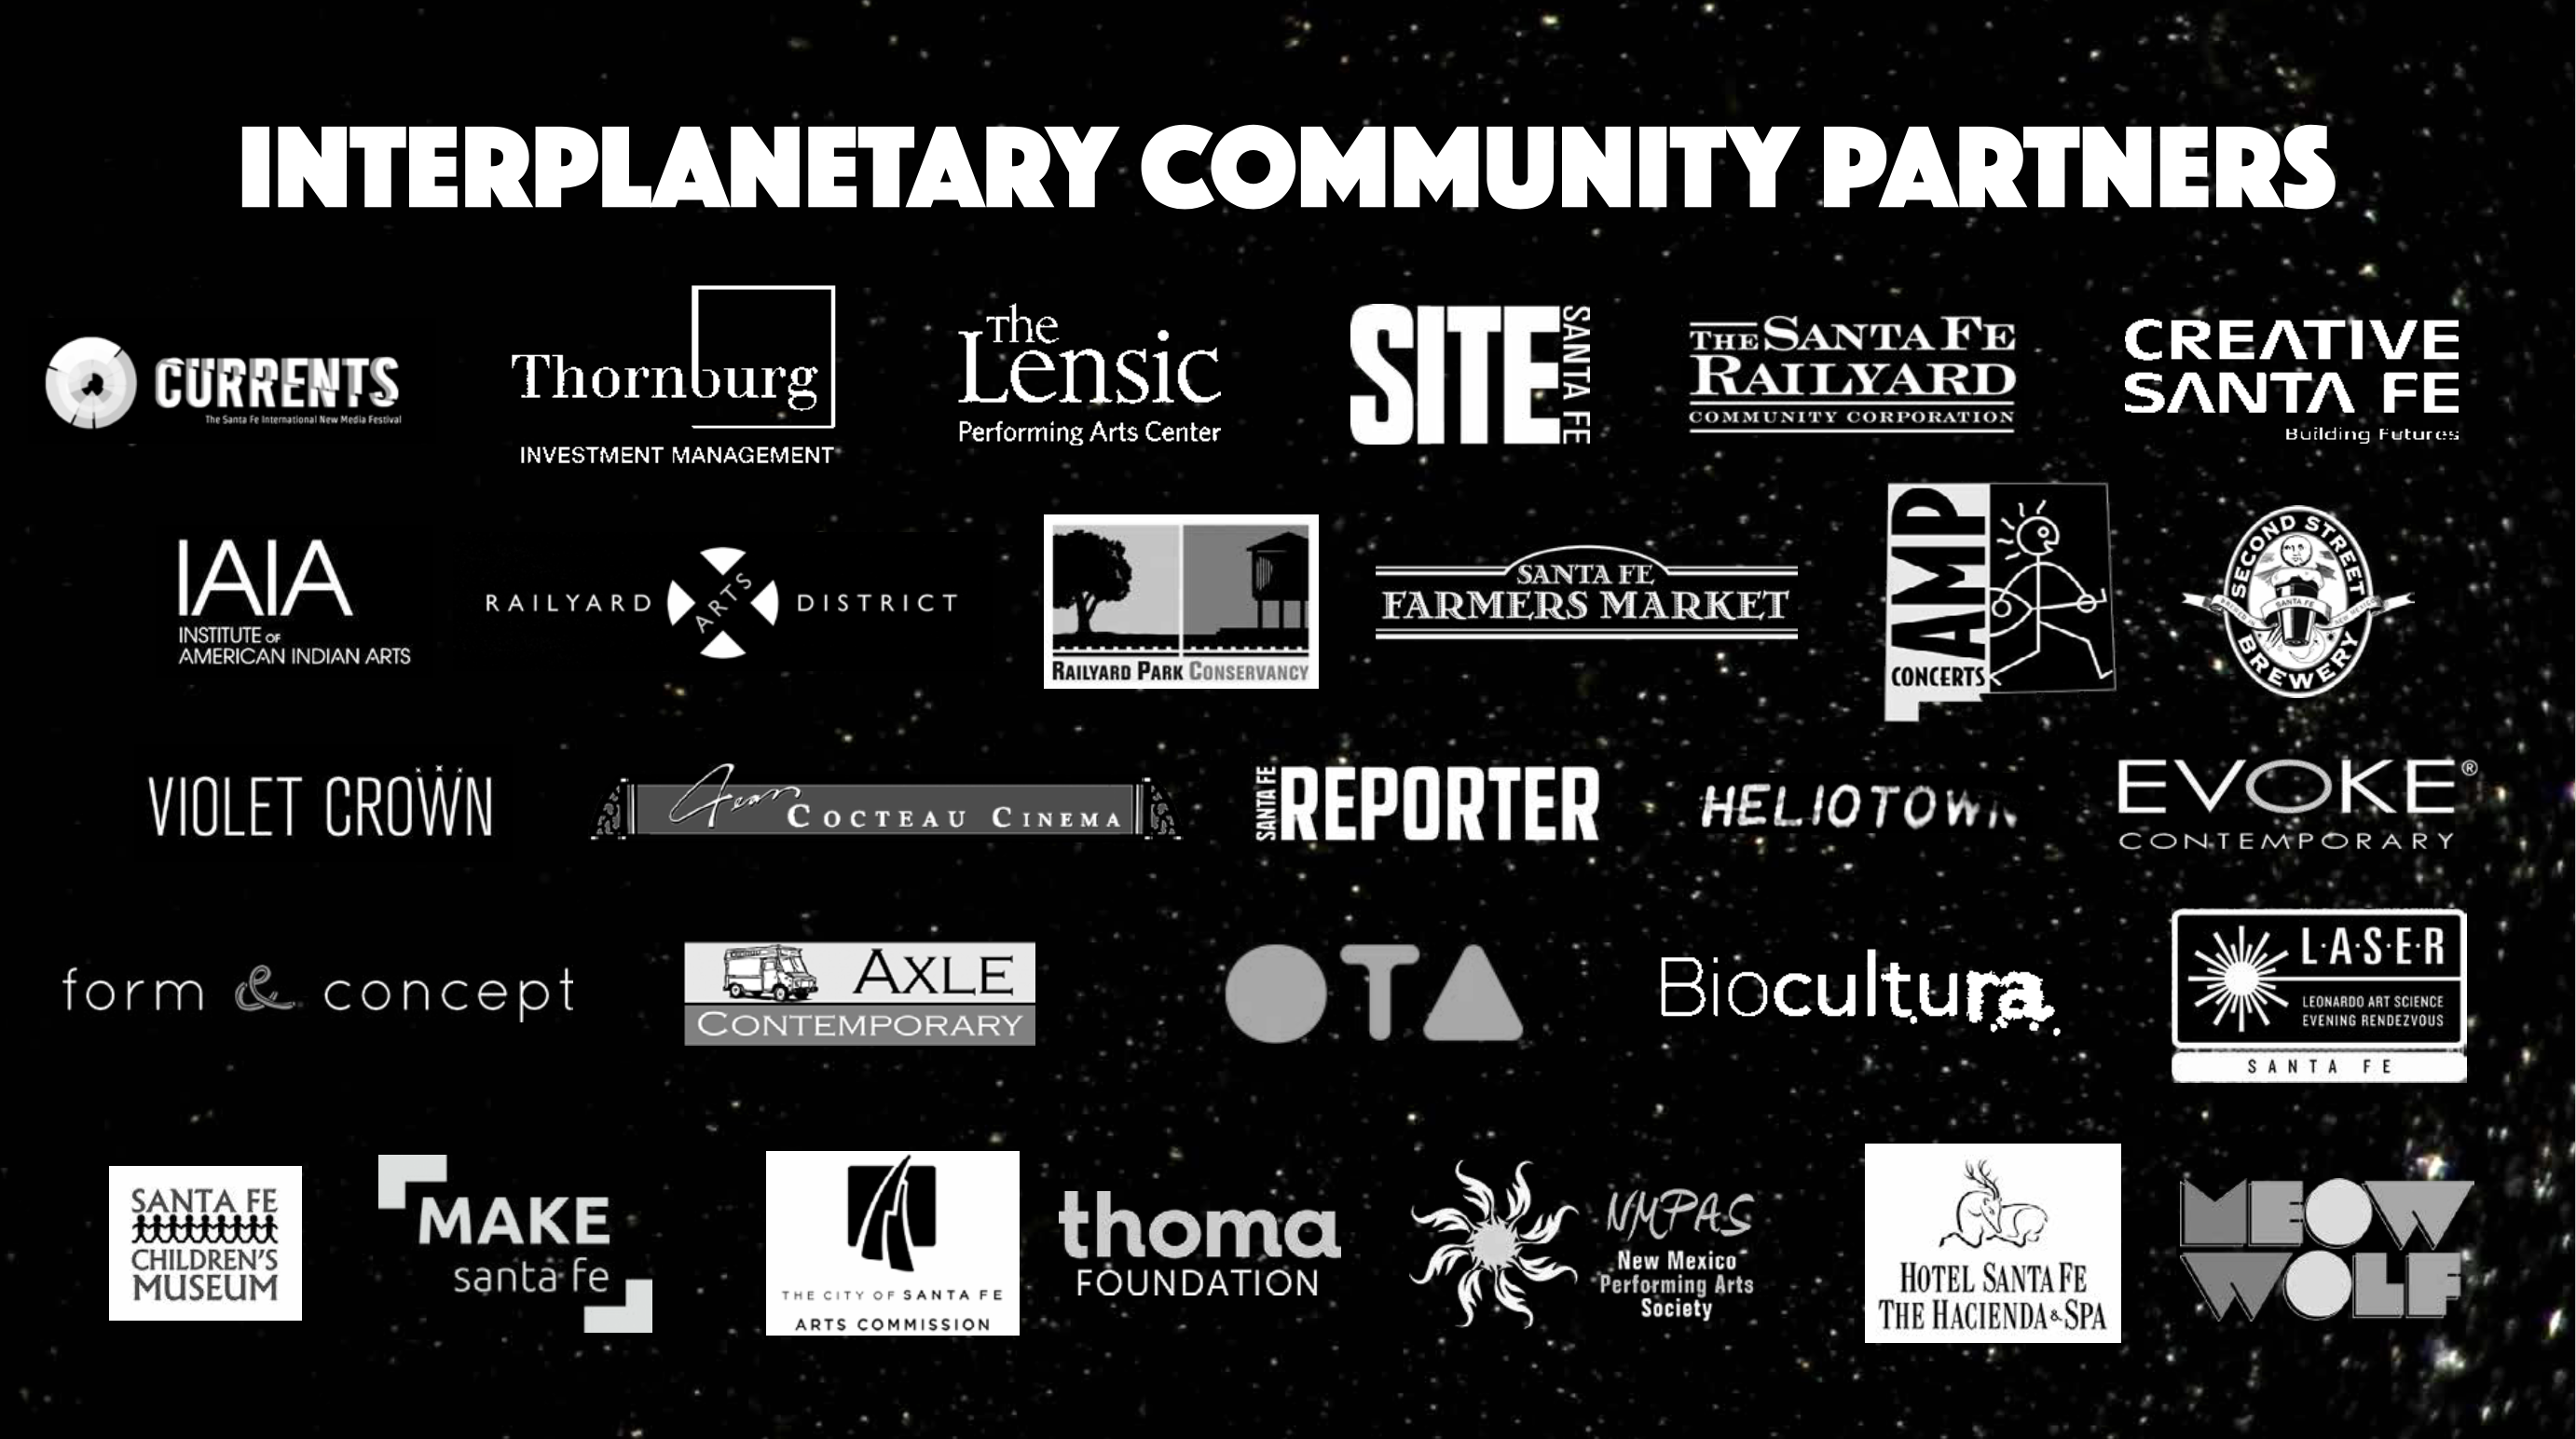 Logos of InterPlanetary Community Partners